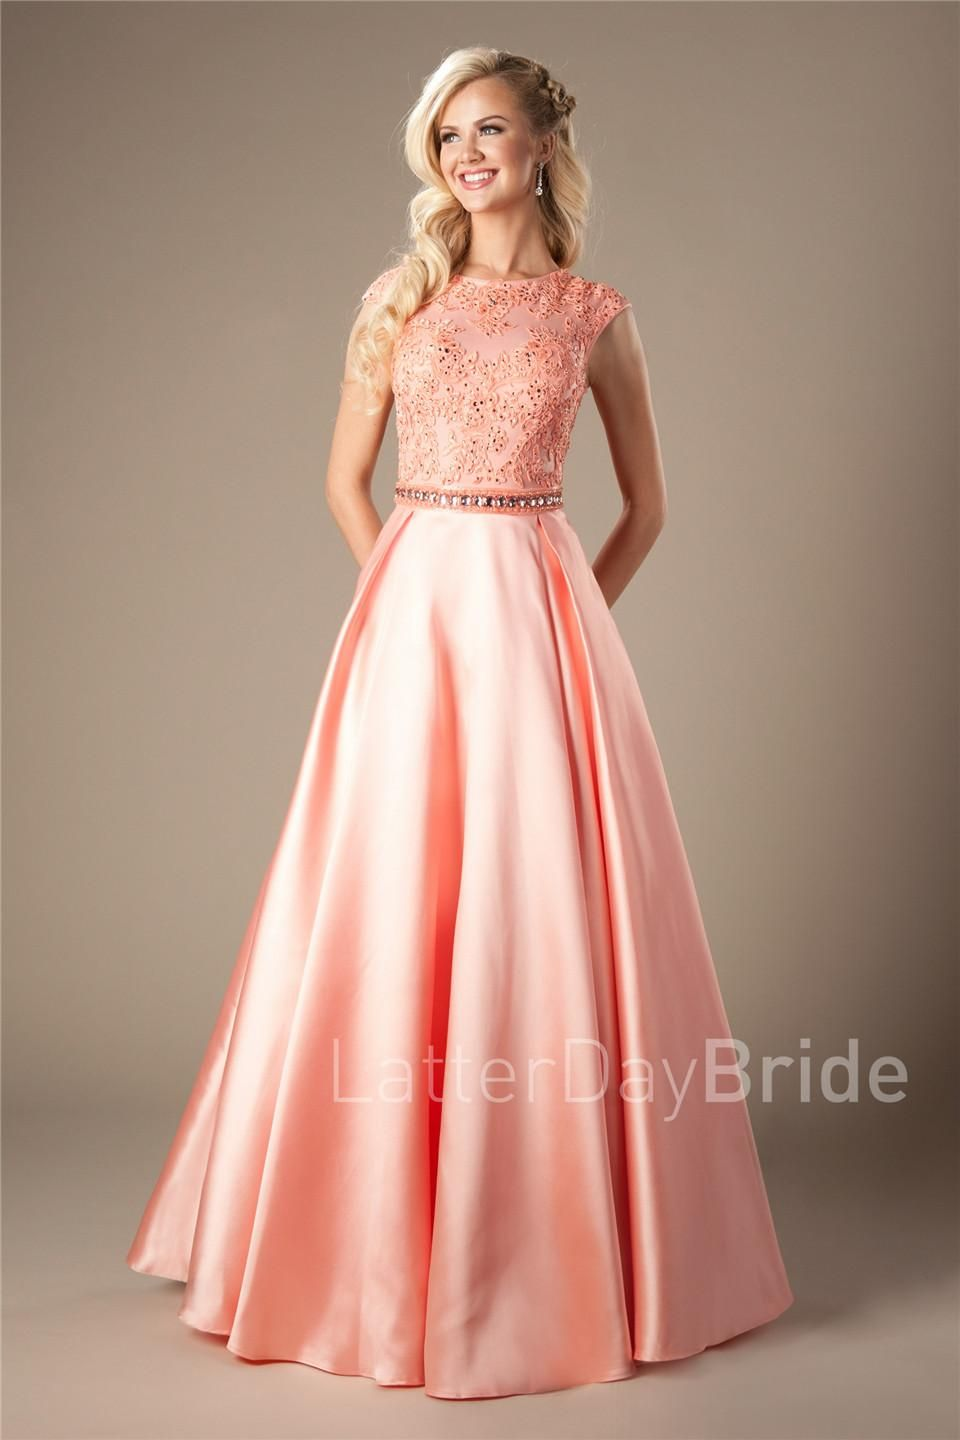 feb09df13171 Coral Satin Lace Long Modest Prom Dresses 2017 Cap Sleeves A-line Beaded  Elegant Beaded Girls Formal Mint Evening Prom Party Dresses Cheap